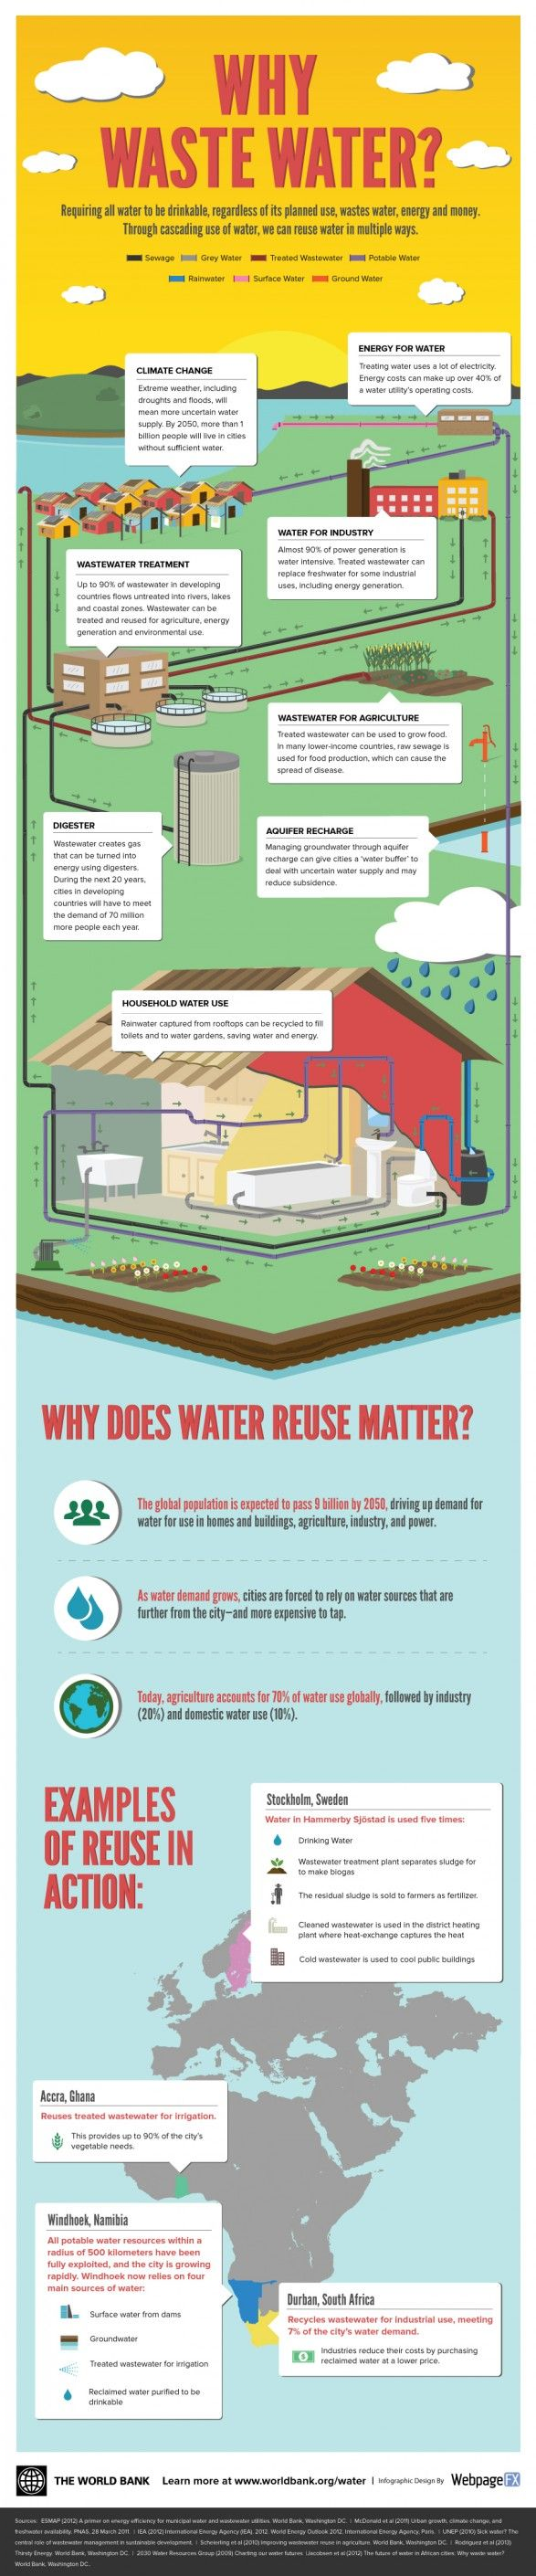 25 unique water conservation ideas on pinterest for Energy conservation facts